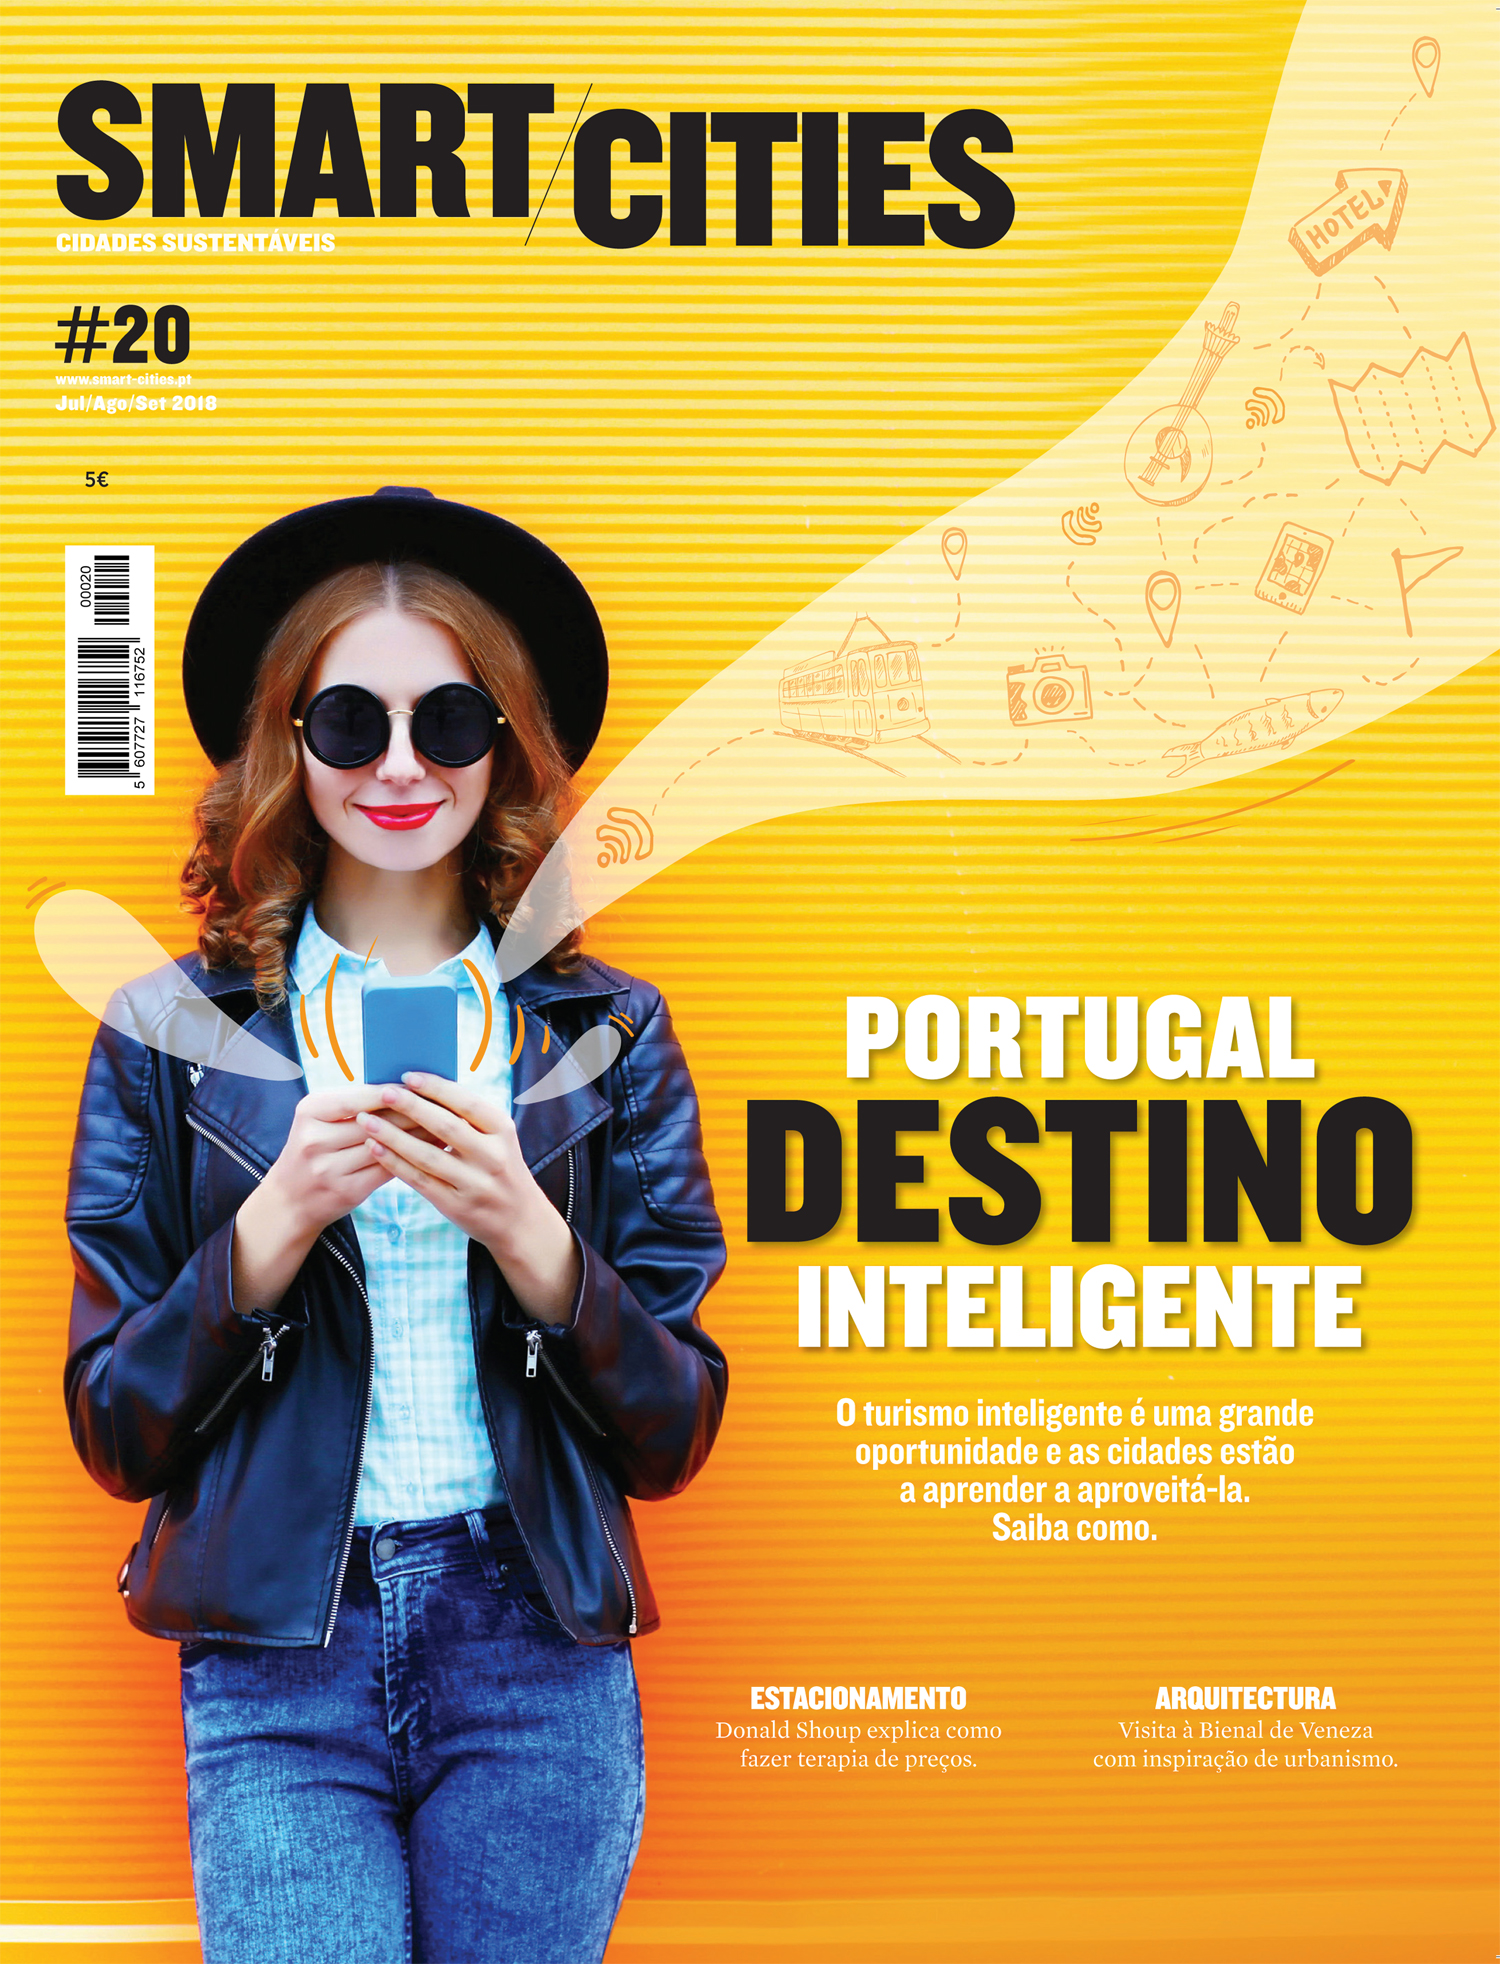 Portugal Destino Inteligente